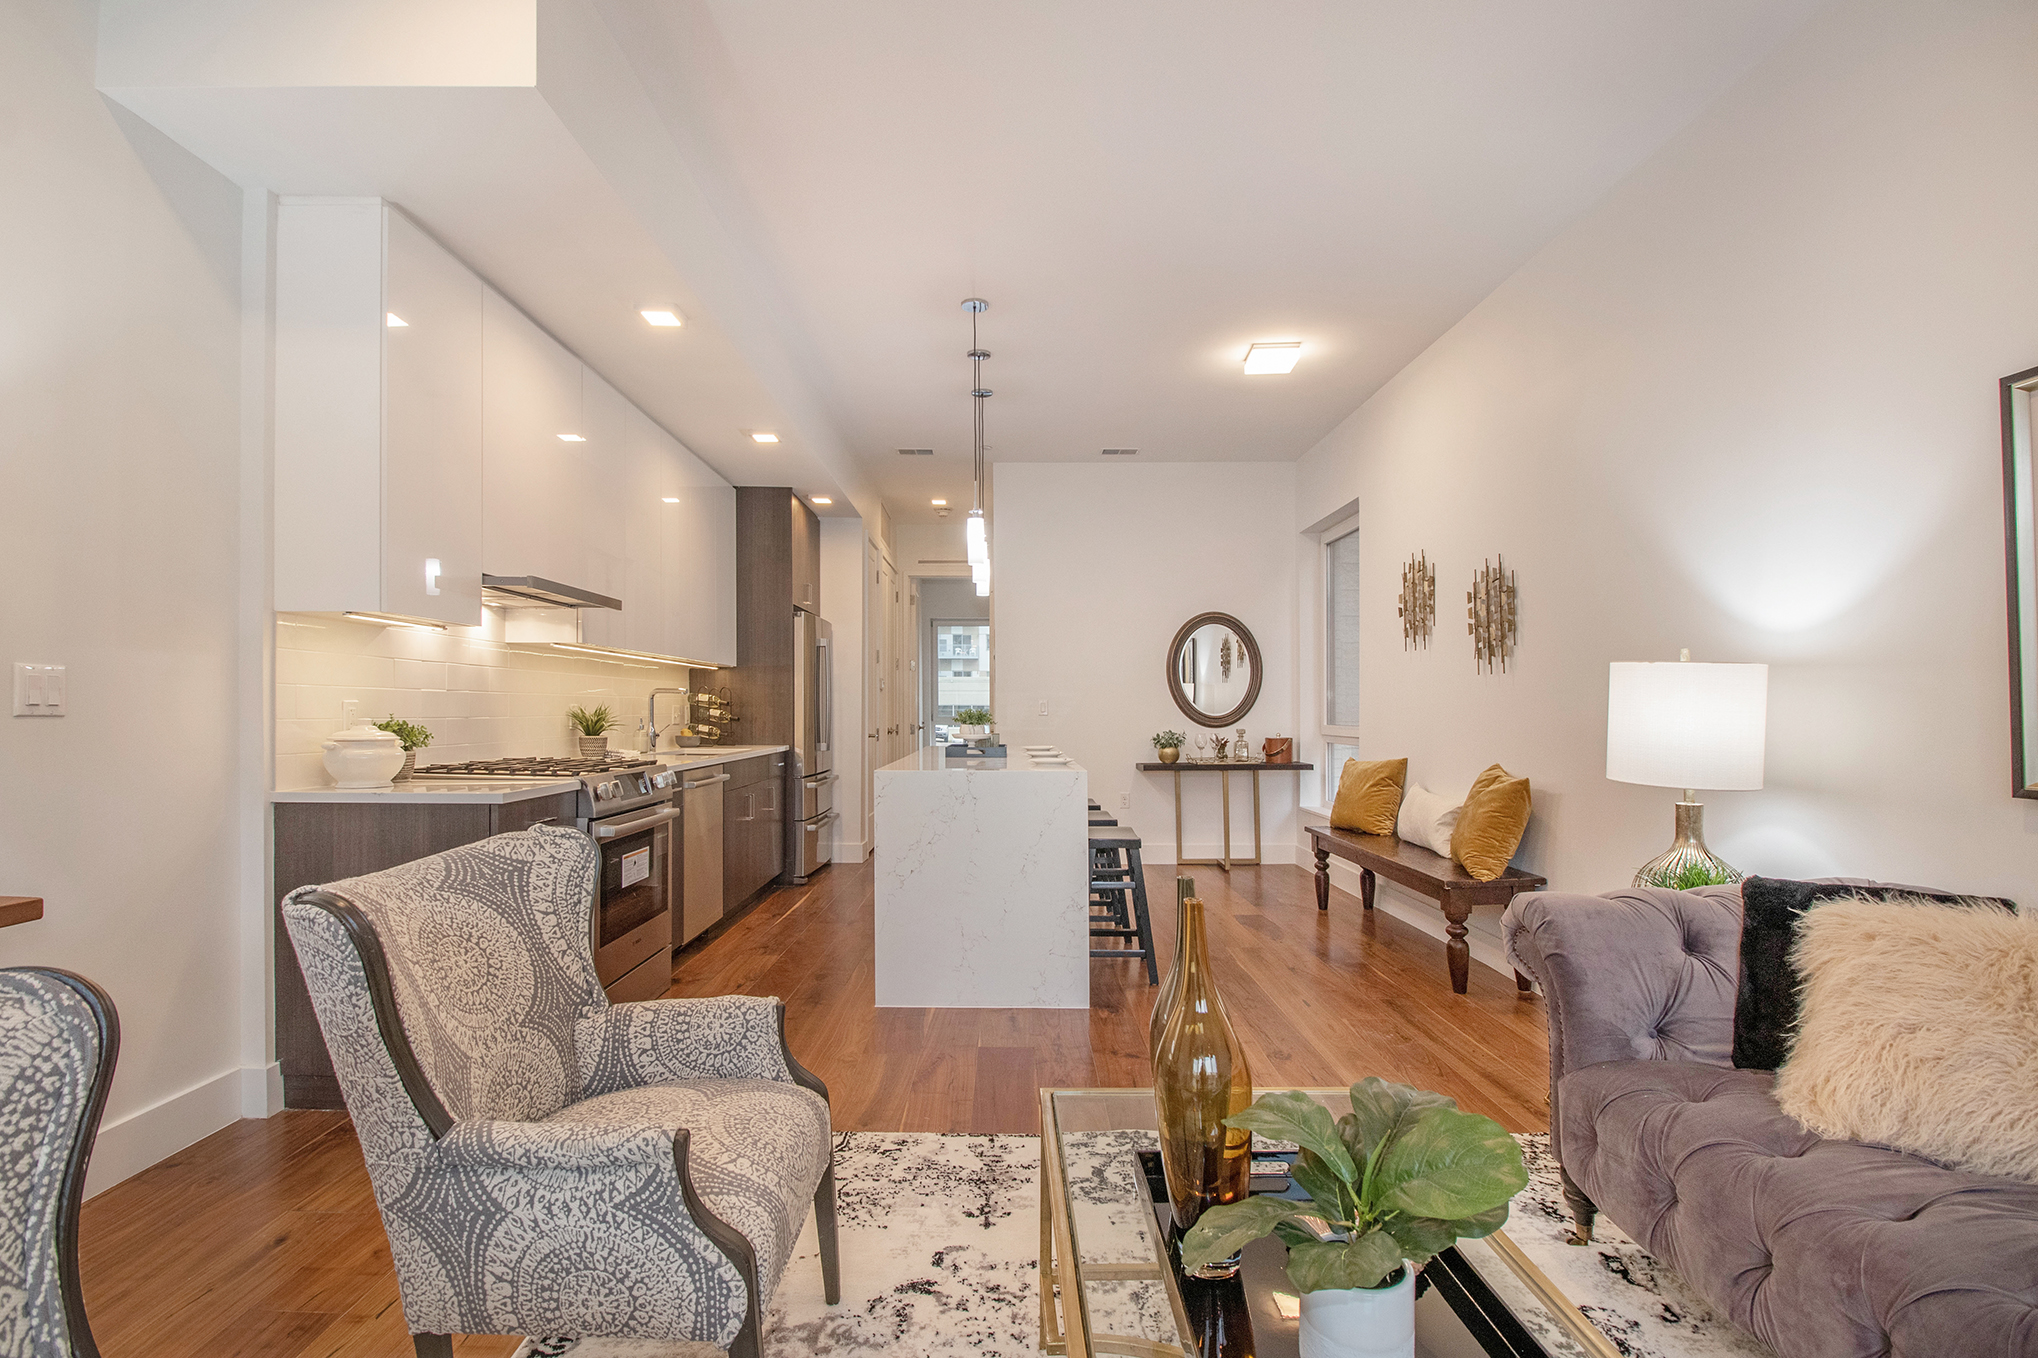 A view down the length of a narrow condo with an open floor plan. There's Victorian-style chairs in the living room and white countertops in the kitchen.